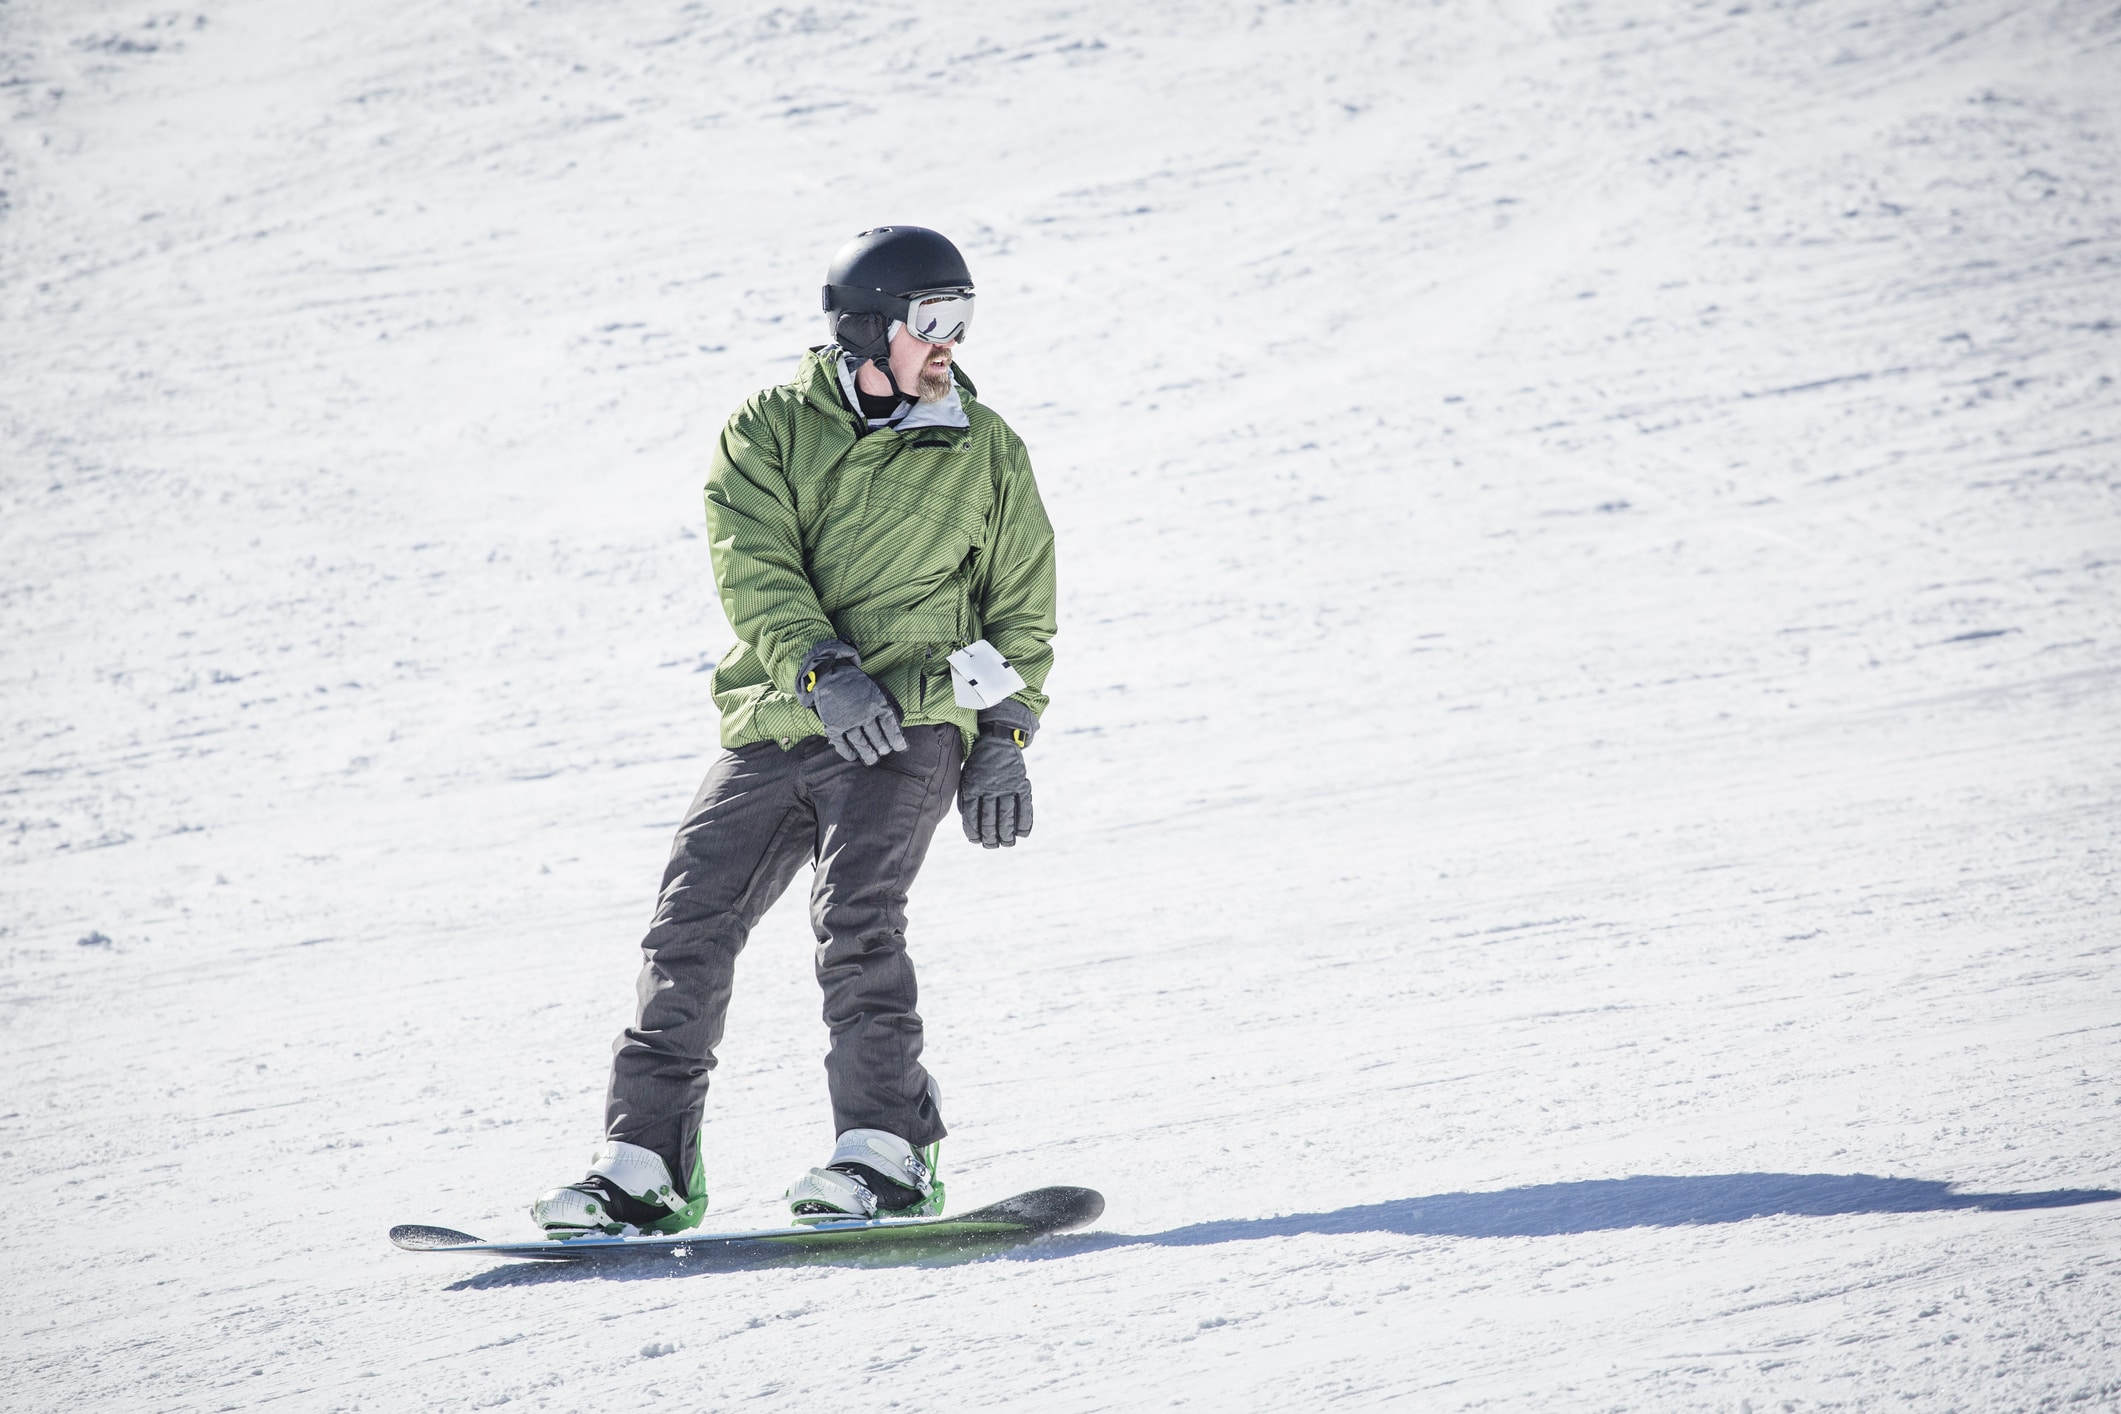 Male adult snowboarder riding down a groomed snow hill. A beautiful day on the slopes having fun